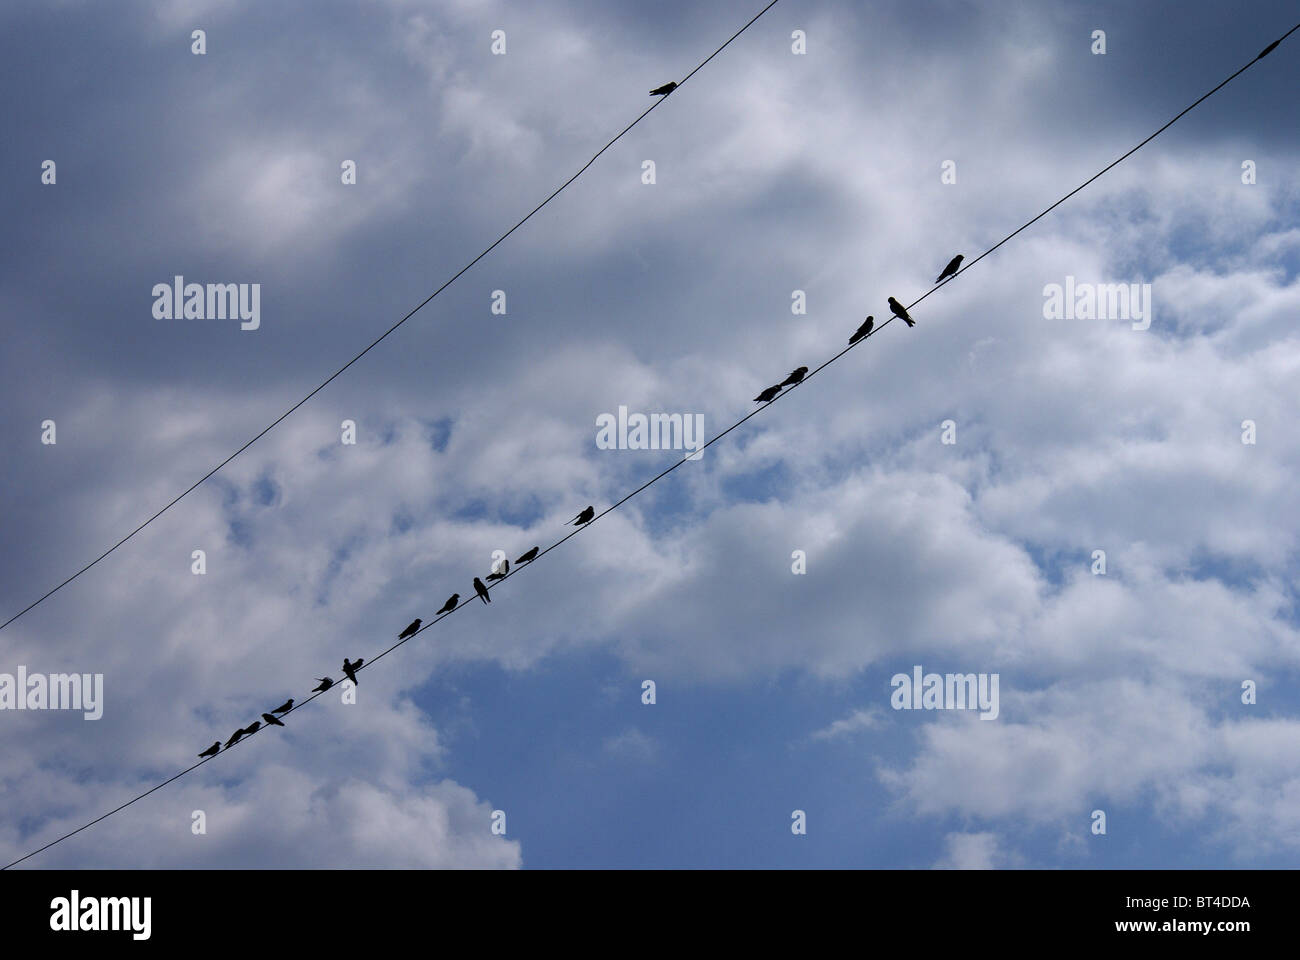 Birds On Wire - Stock Image